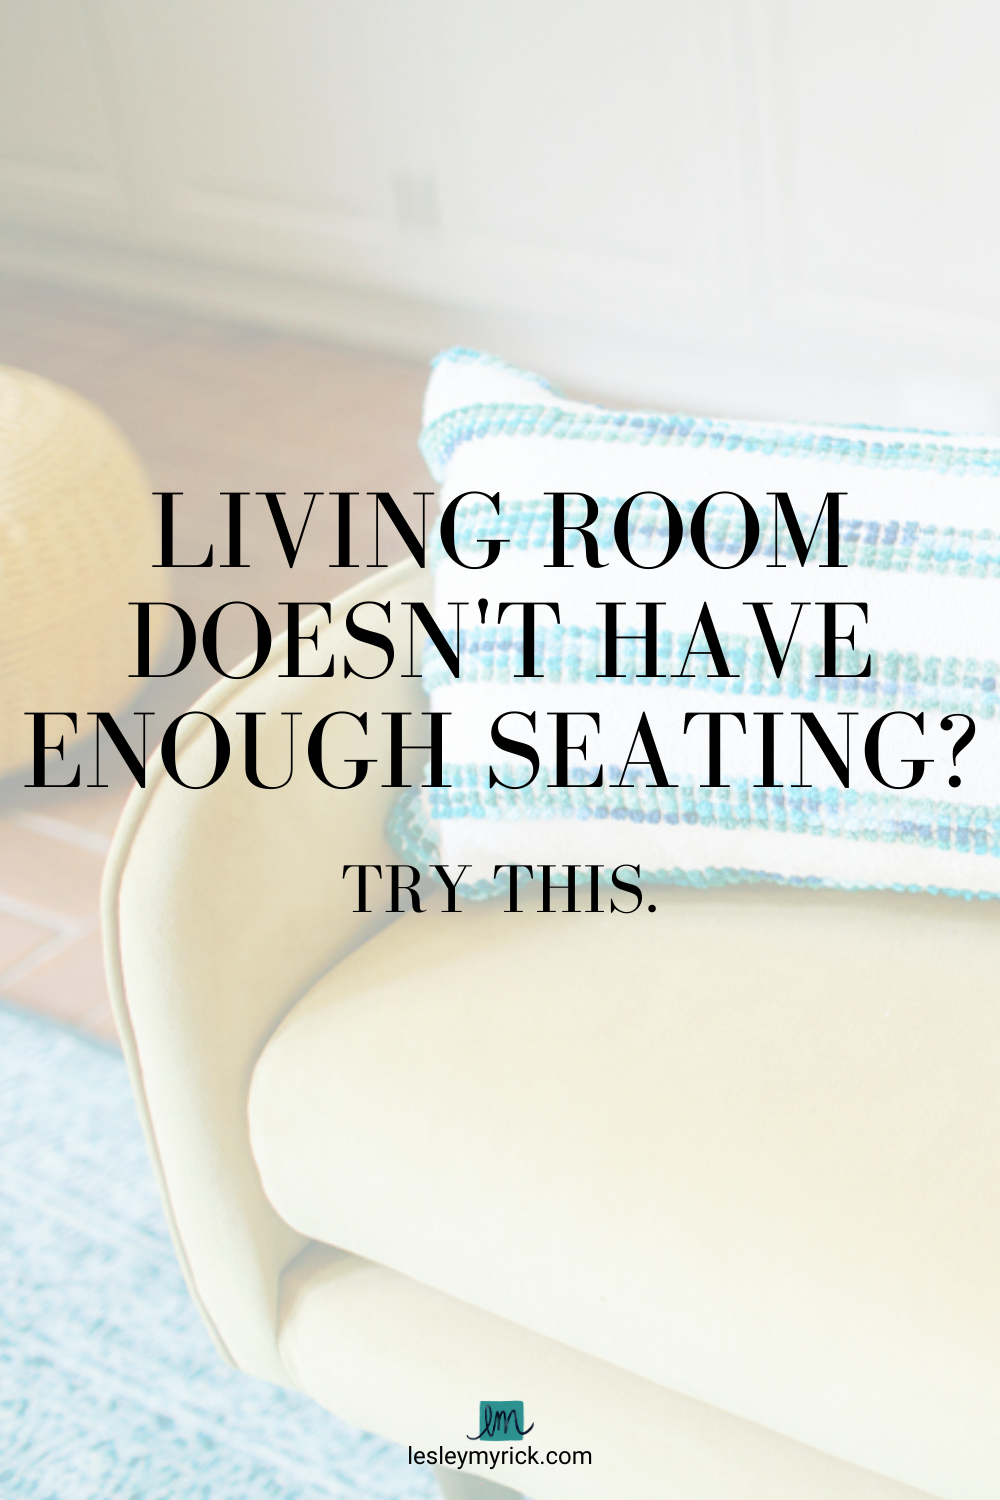 What if your living room doesn't have enough seating? Here are 3 ideas from interior designer Lesley Myrick.